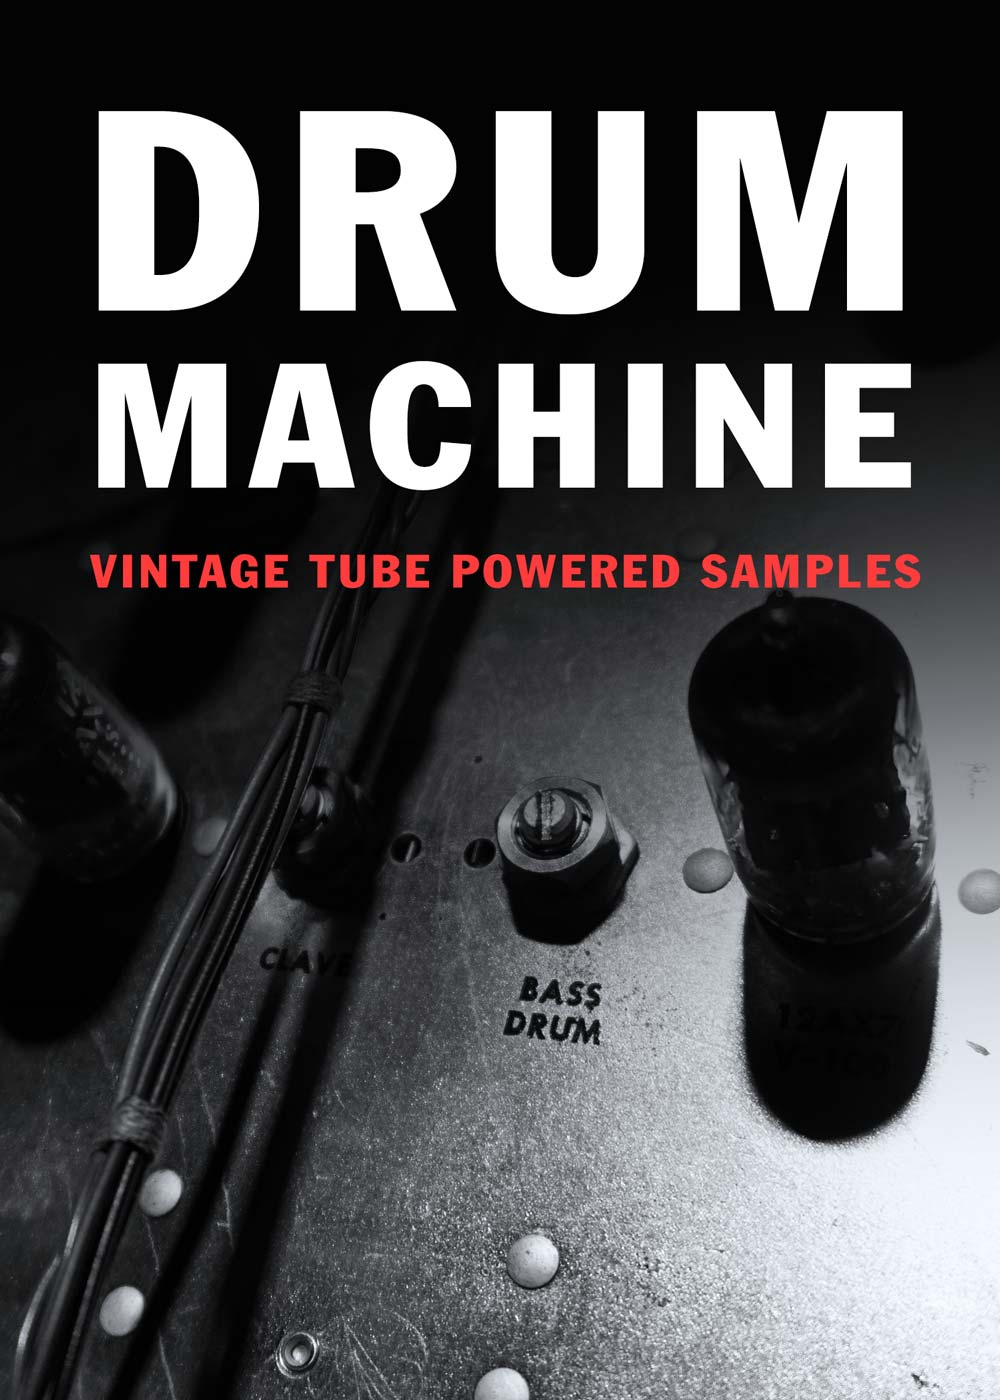 THE FIRST DRUM MACHINE